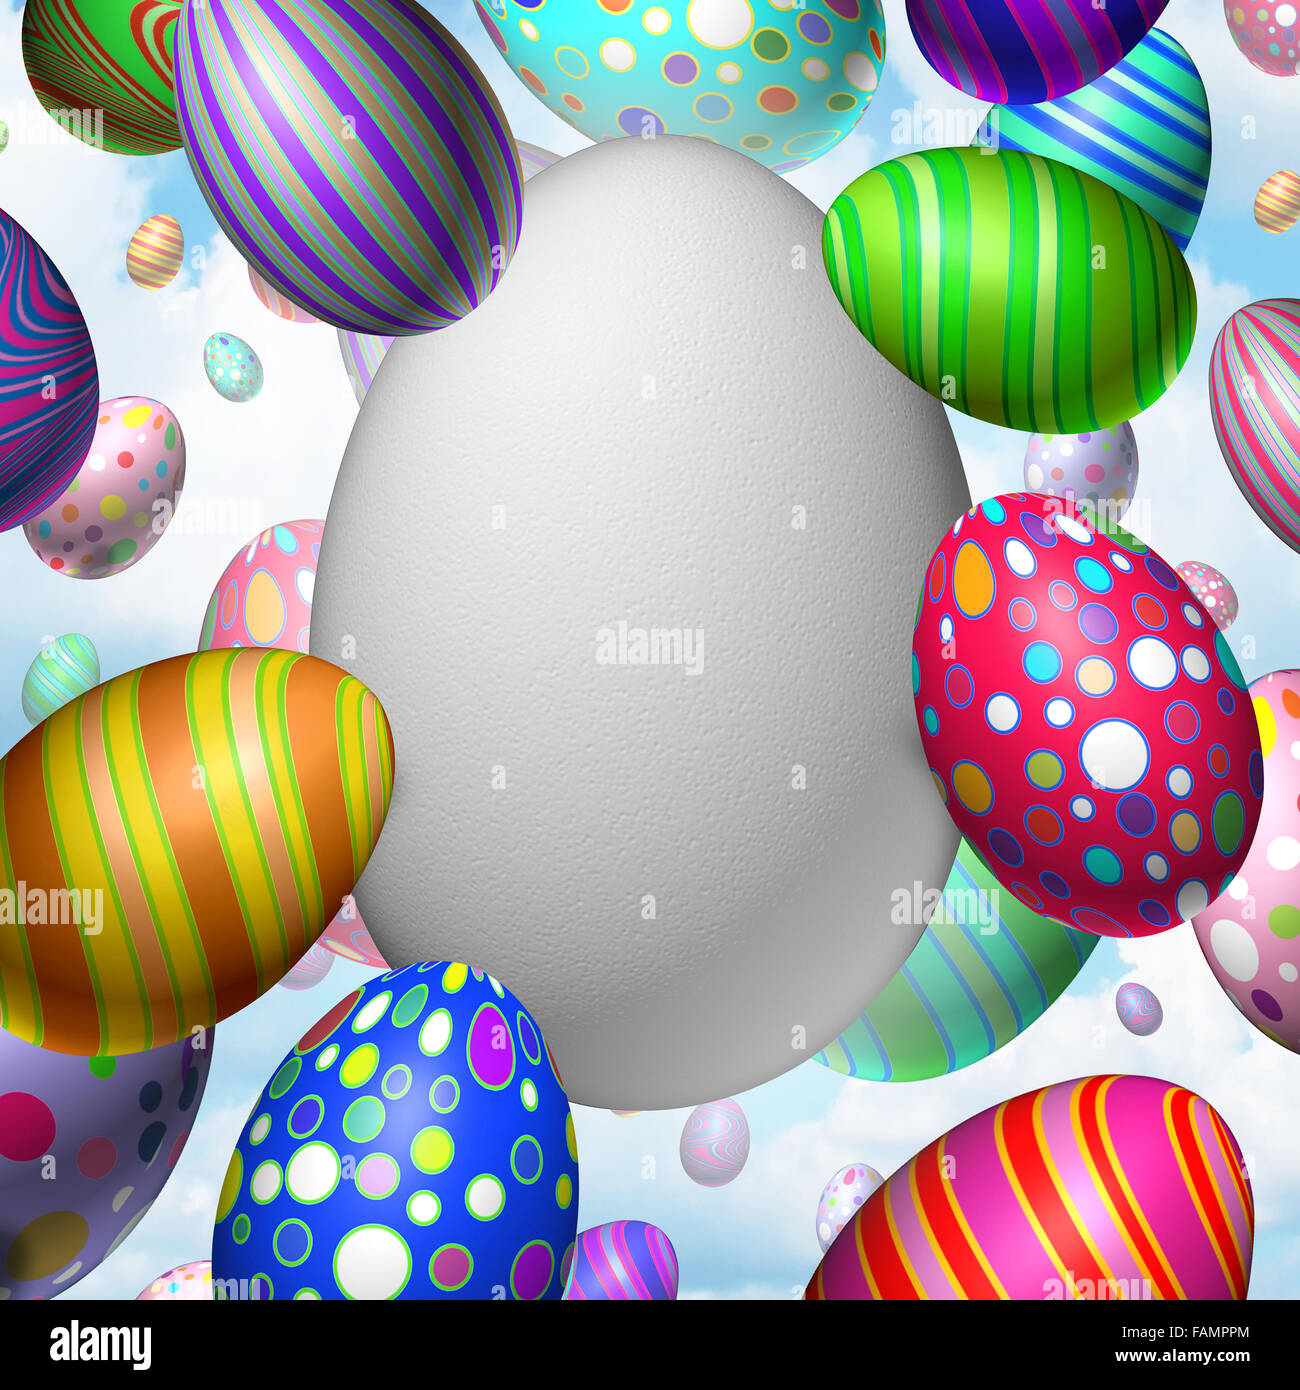 Easter Celebration Blank Egg concept as a group of flying decorated eggs with one large white egg as a symbol for - Stock Image